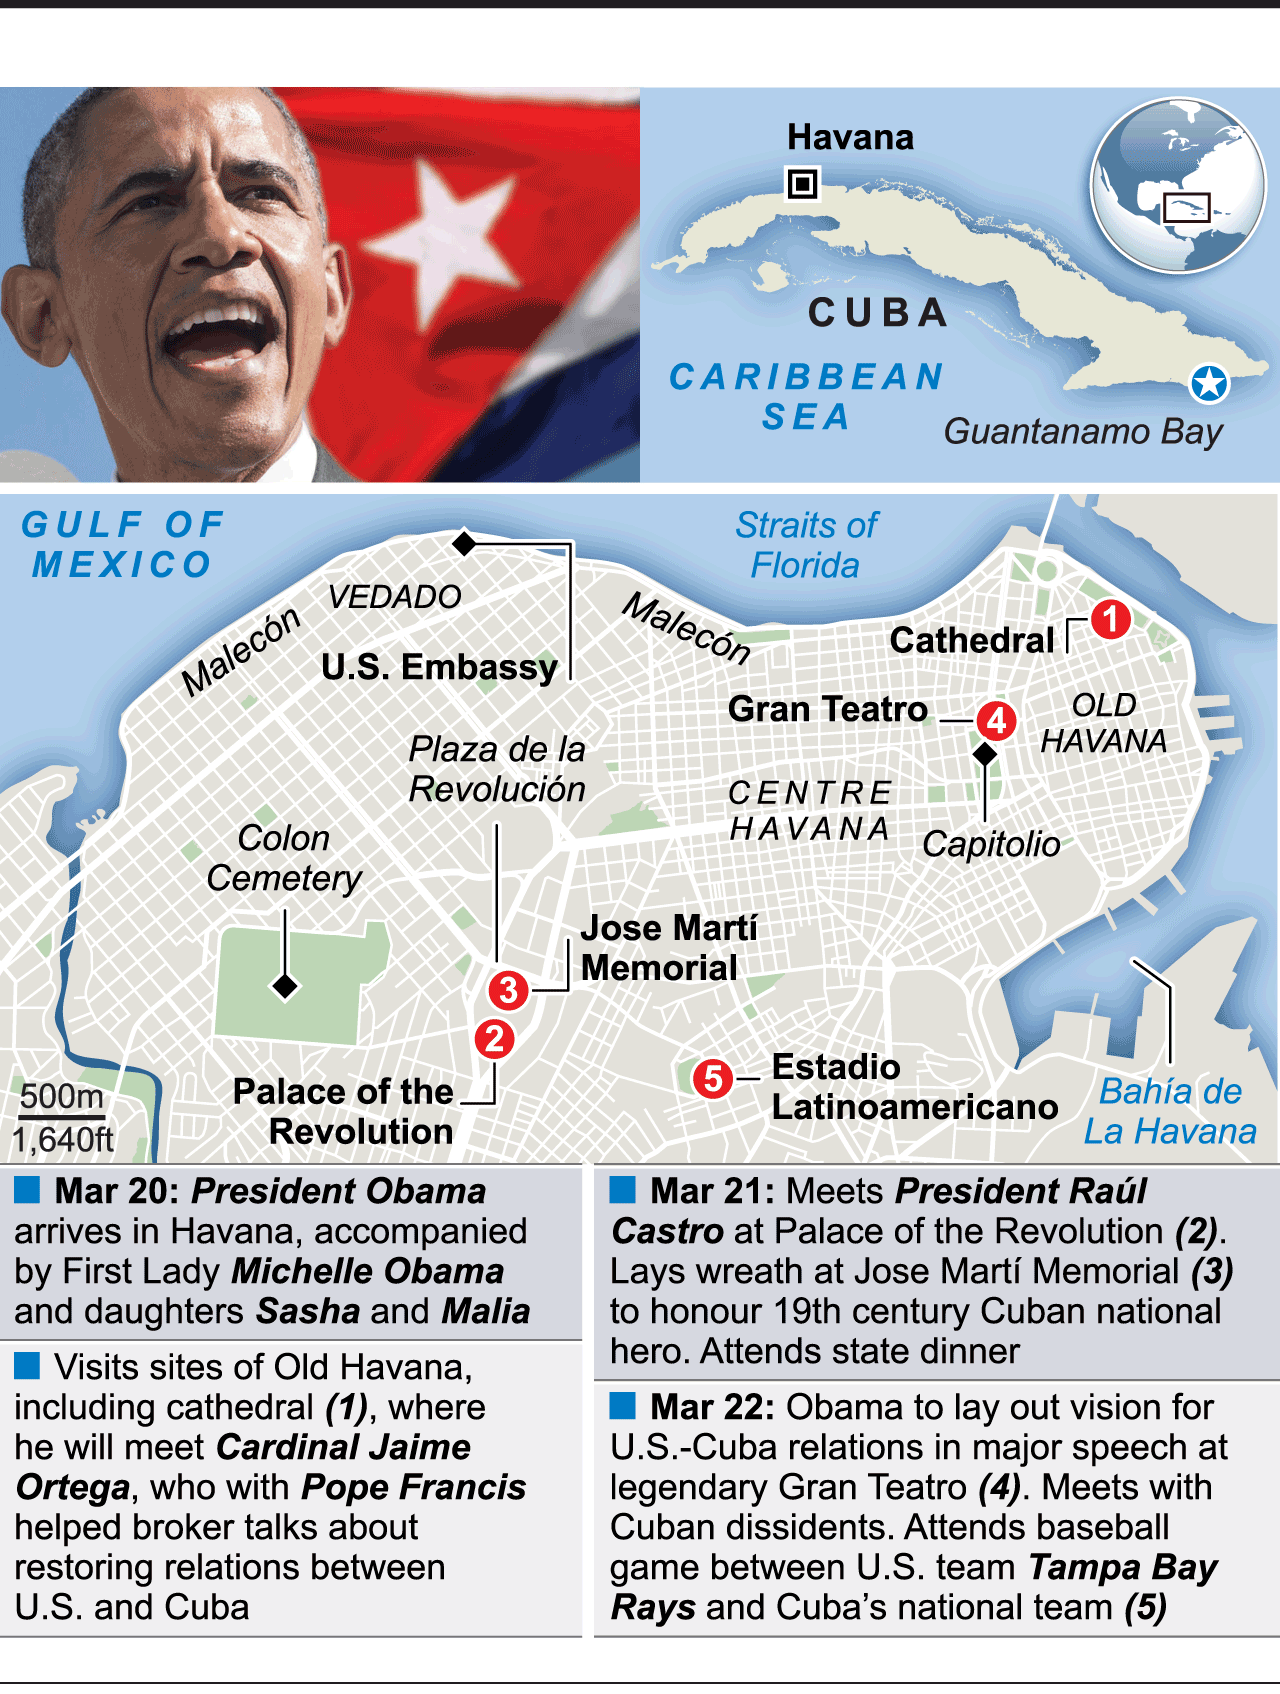 https://www.graphicnews.com/en/pages/34085/U.S.-Obama-makes-historic-trip-to-Cuba-?var=d